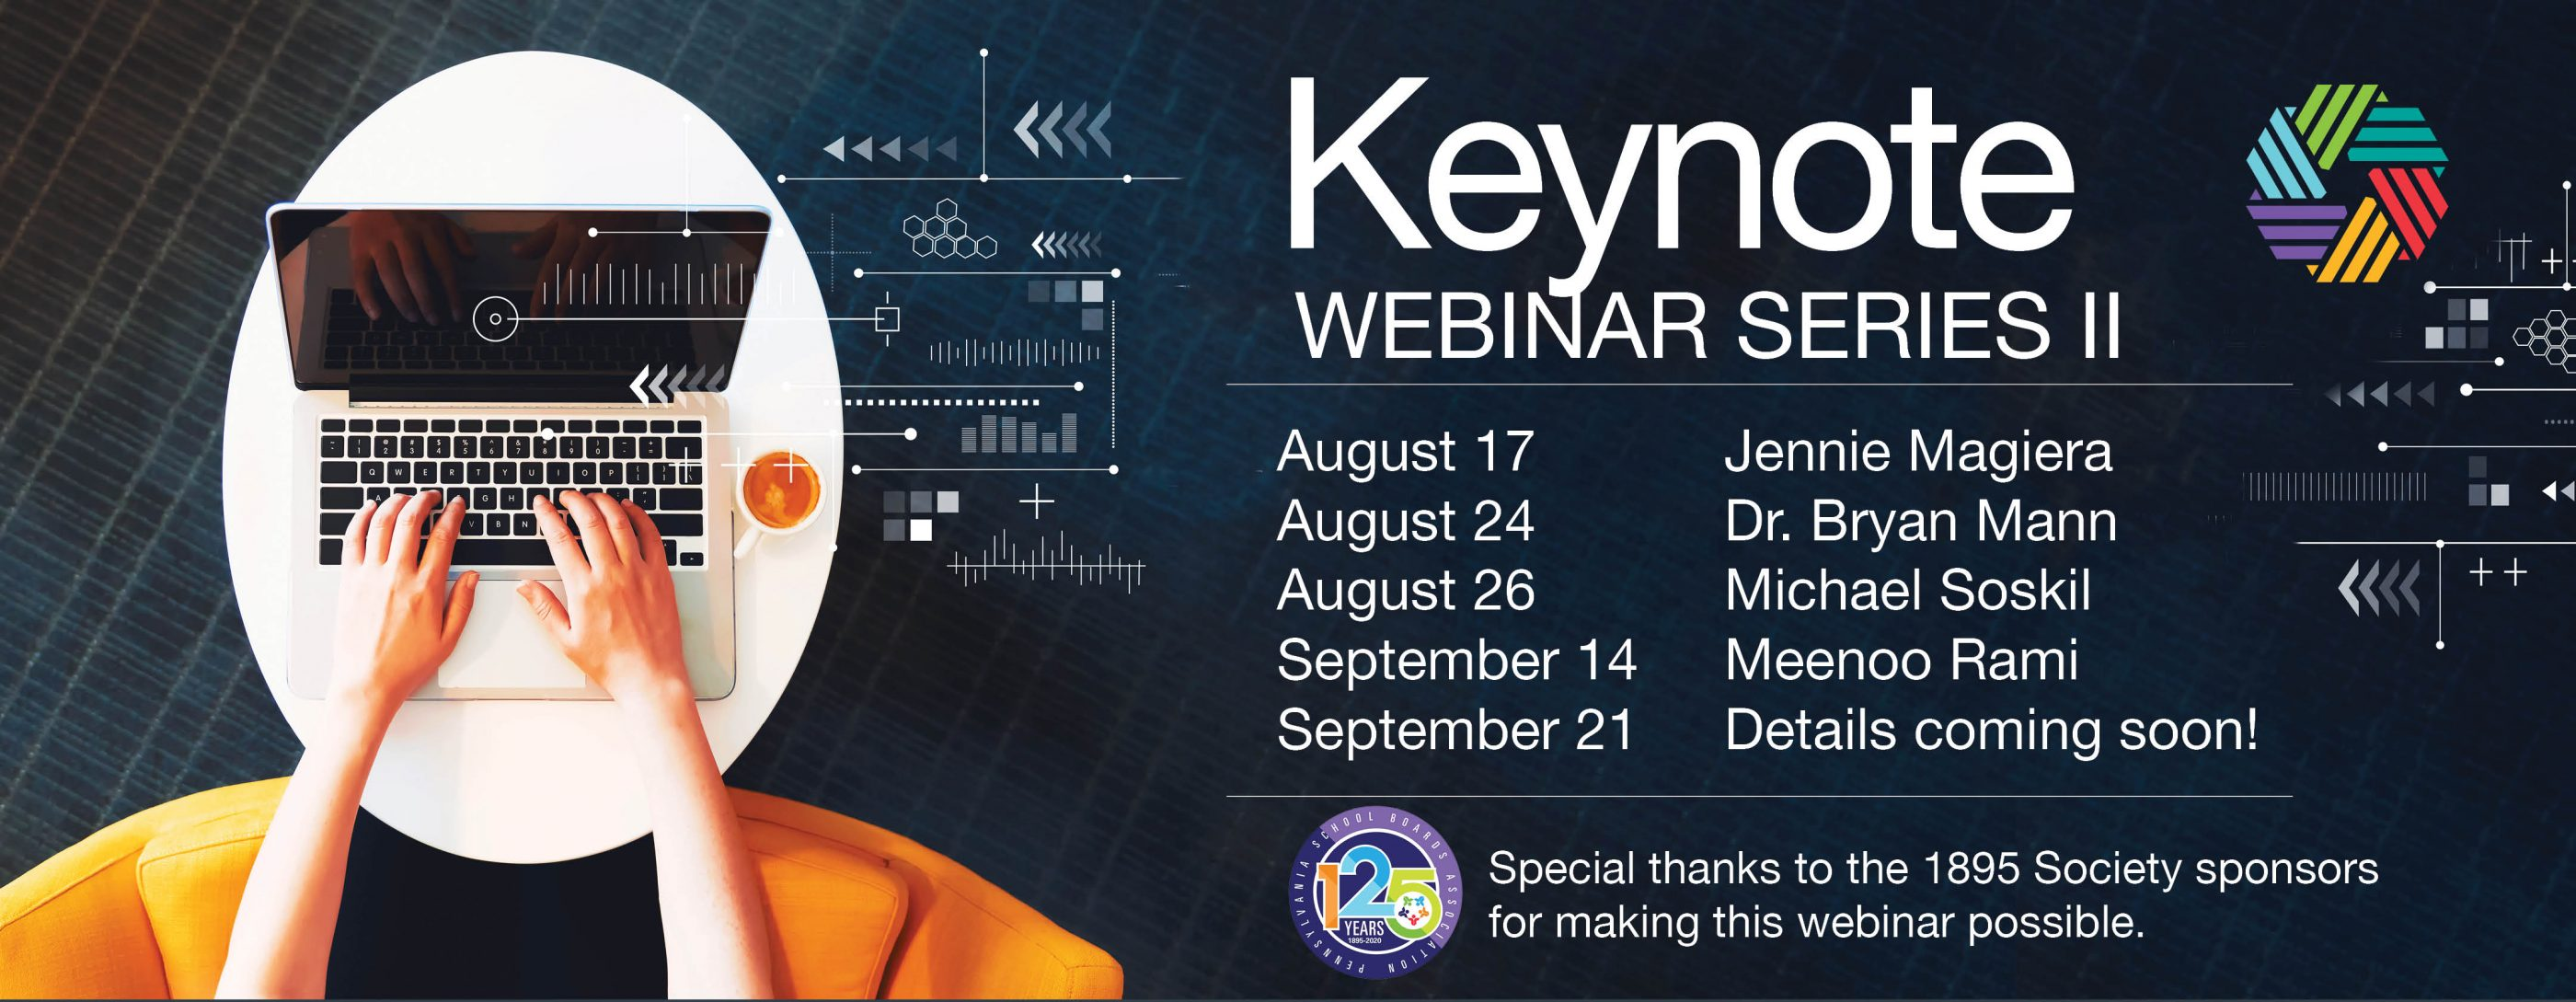 The Keynote Webinar Series continues